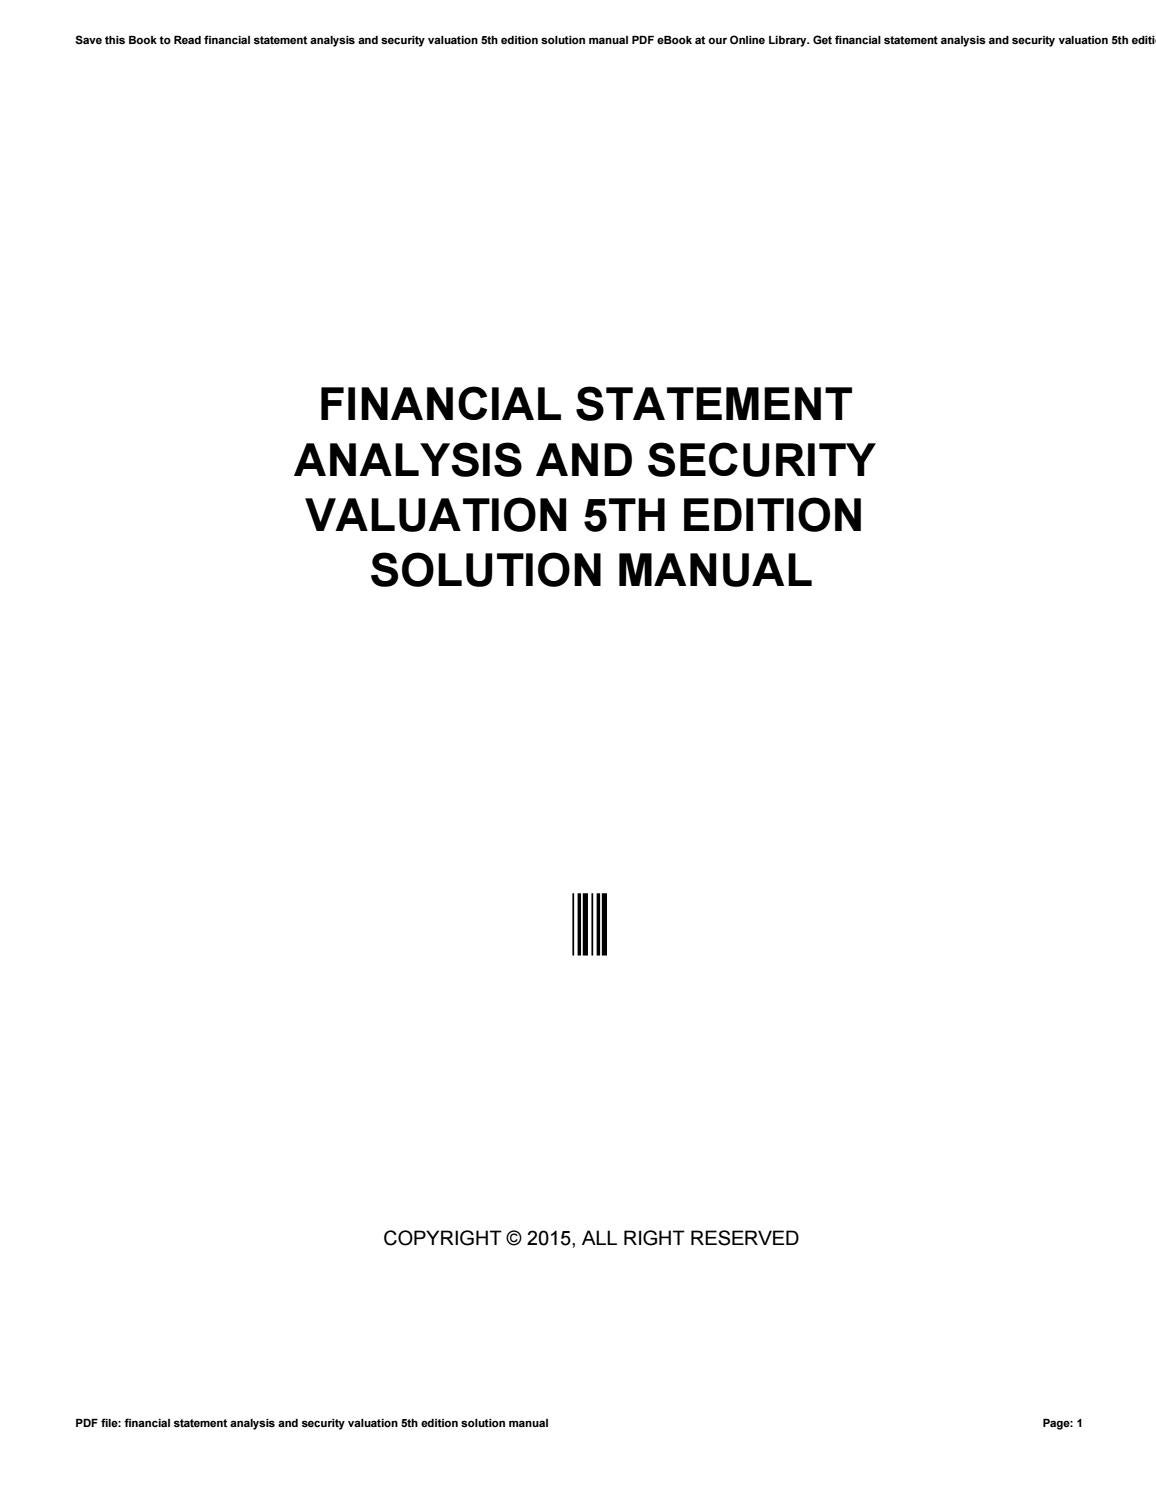 Financial statement analysis and security valuation 5th edition solution  manual by morriesworld - issuu